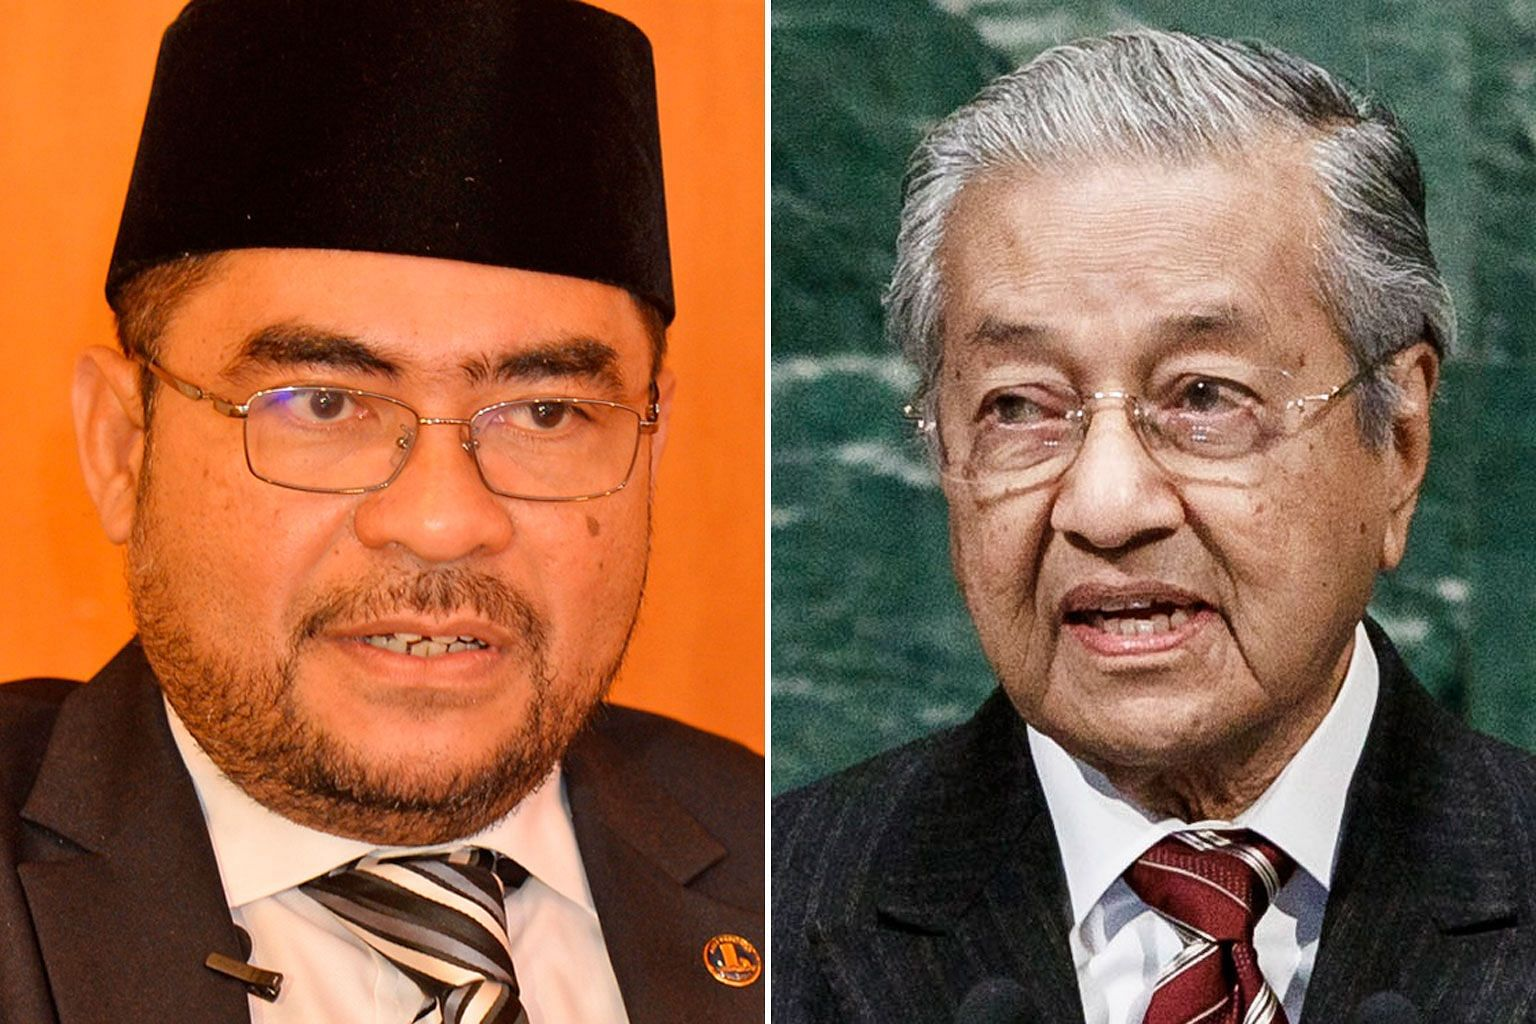 Asked to comment on Datuk Mujahid Yusof Rawa's (left) remarks, Prime Minister Mahathir Mohamad says his government wants to practise a more compassionate form of Islam.